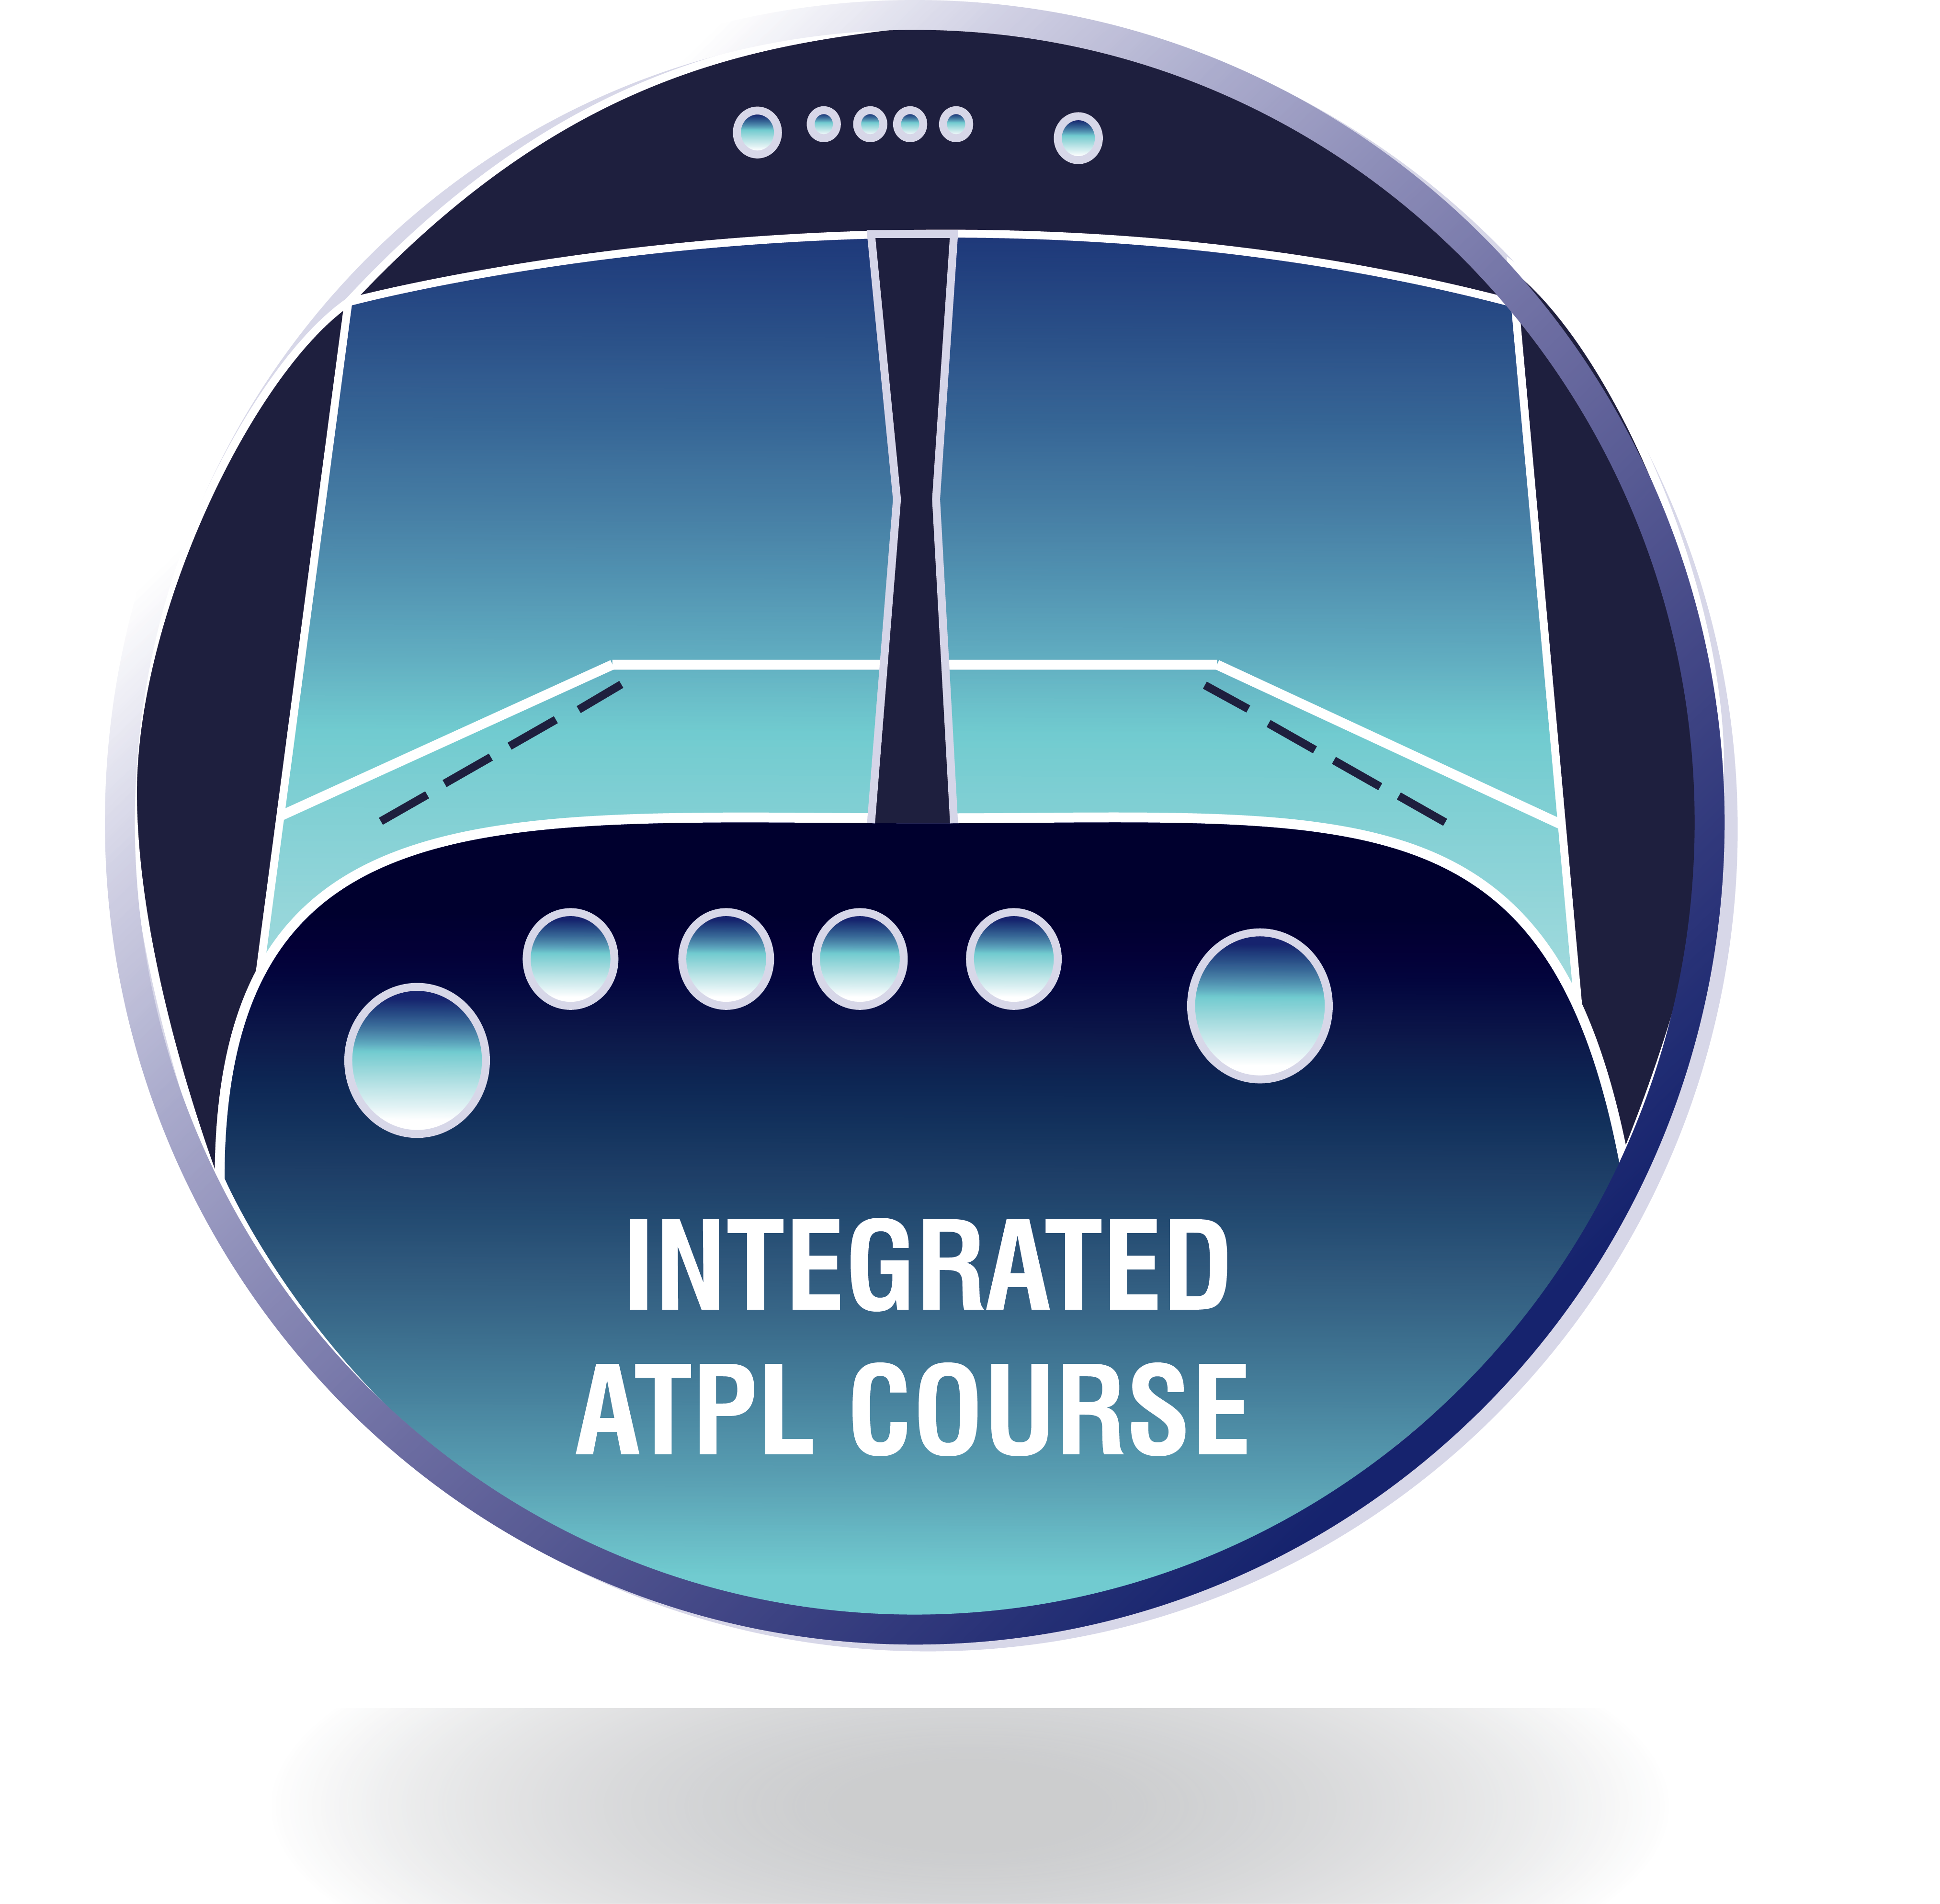 APTL Integrated Course Tab